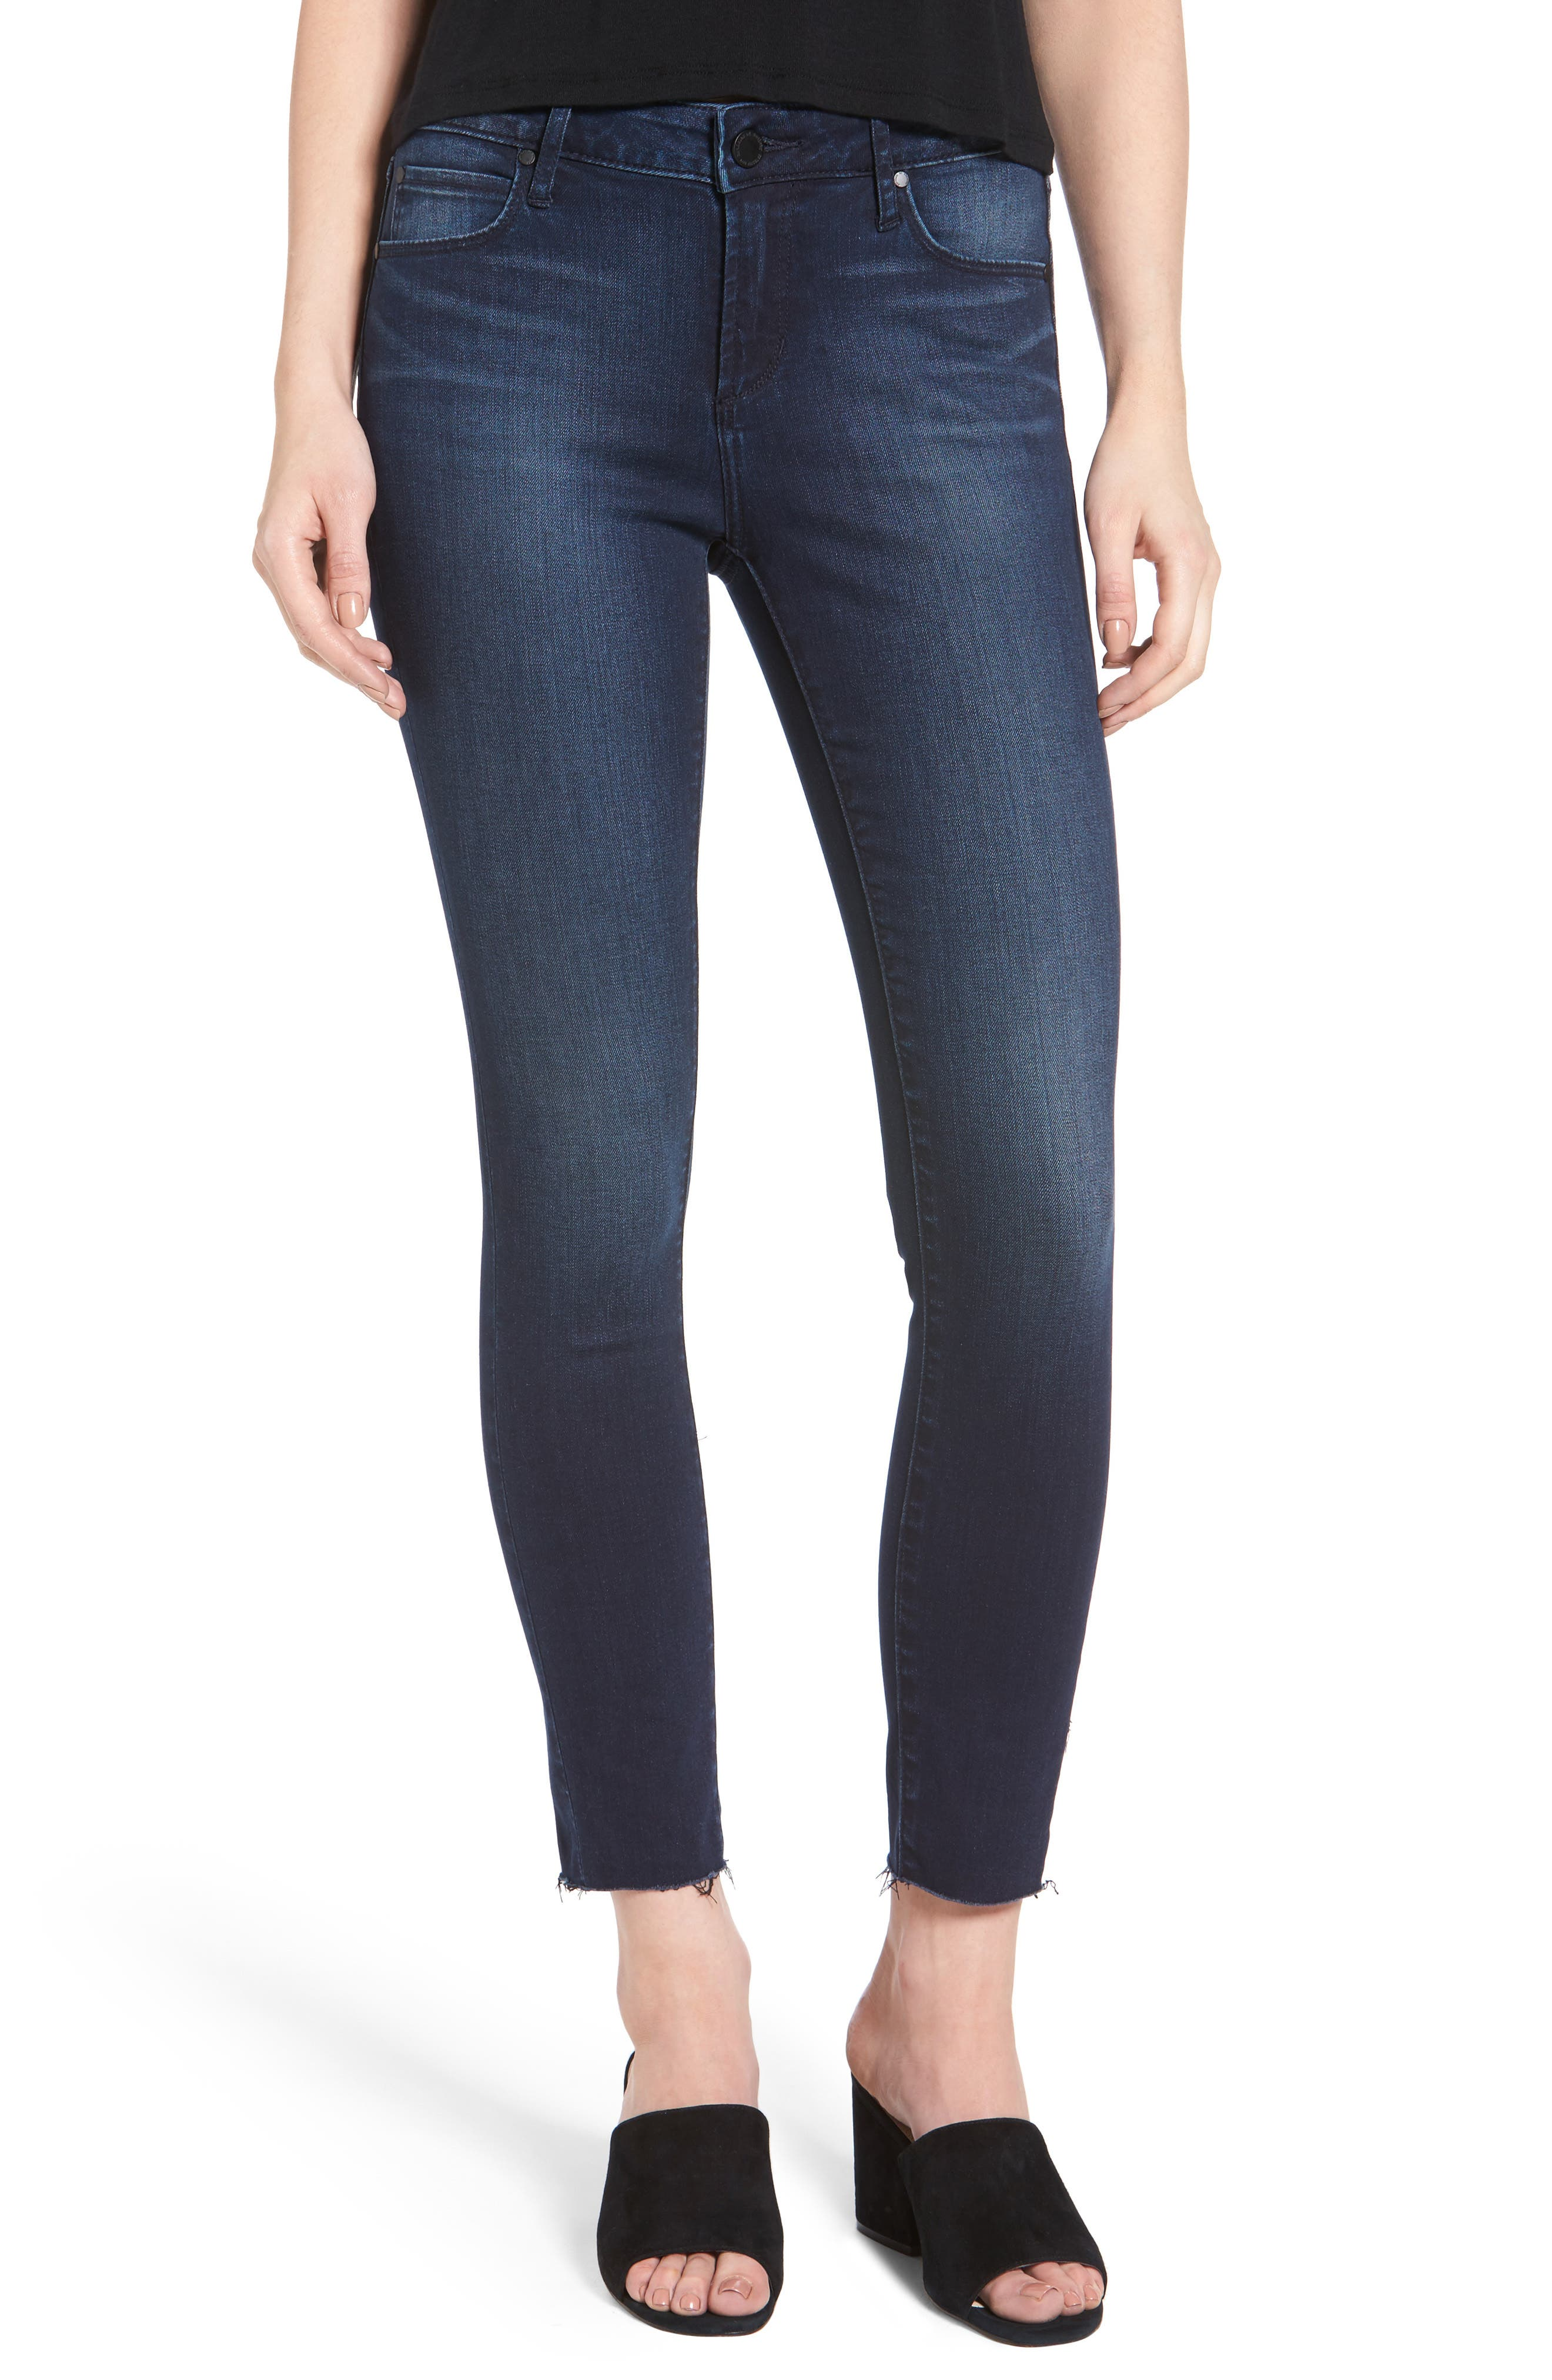 Articles of Society Carly Crop Skinny Jeans (Brooks)